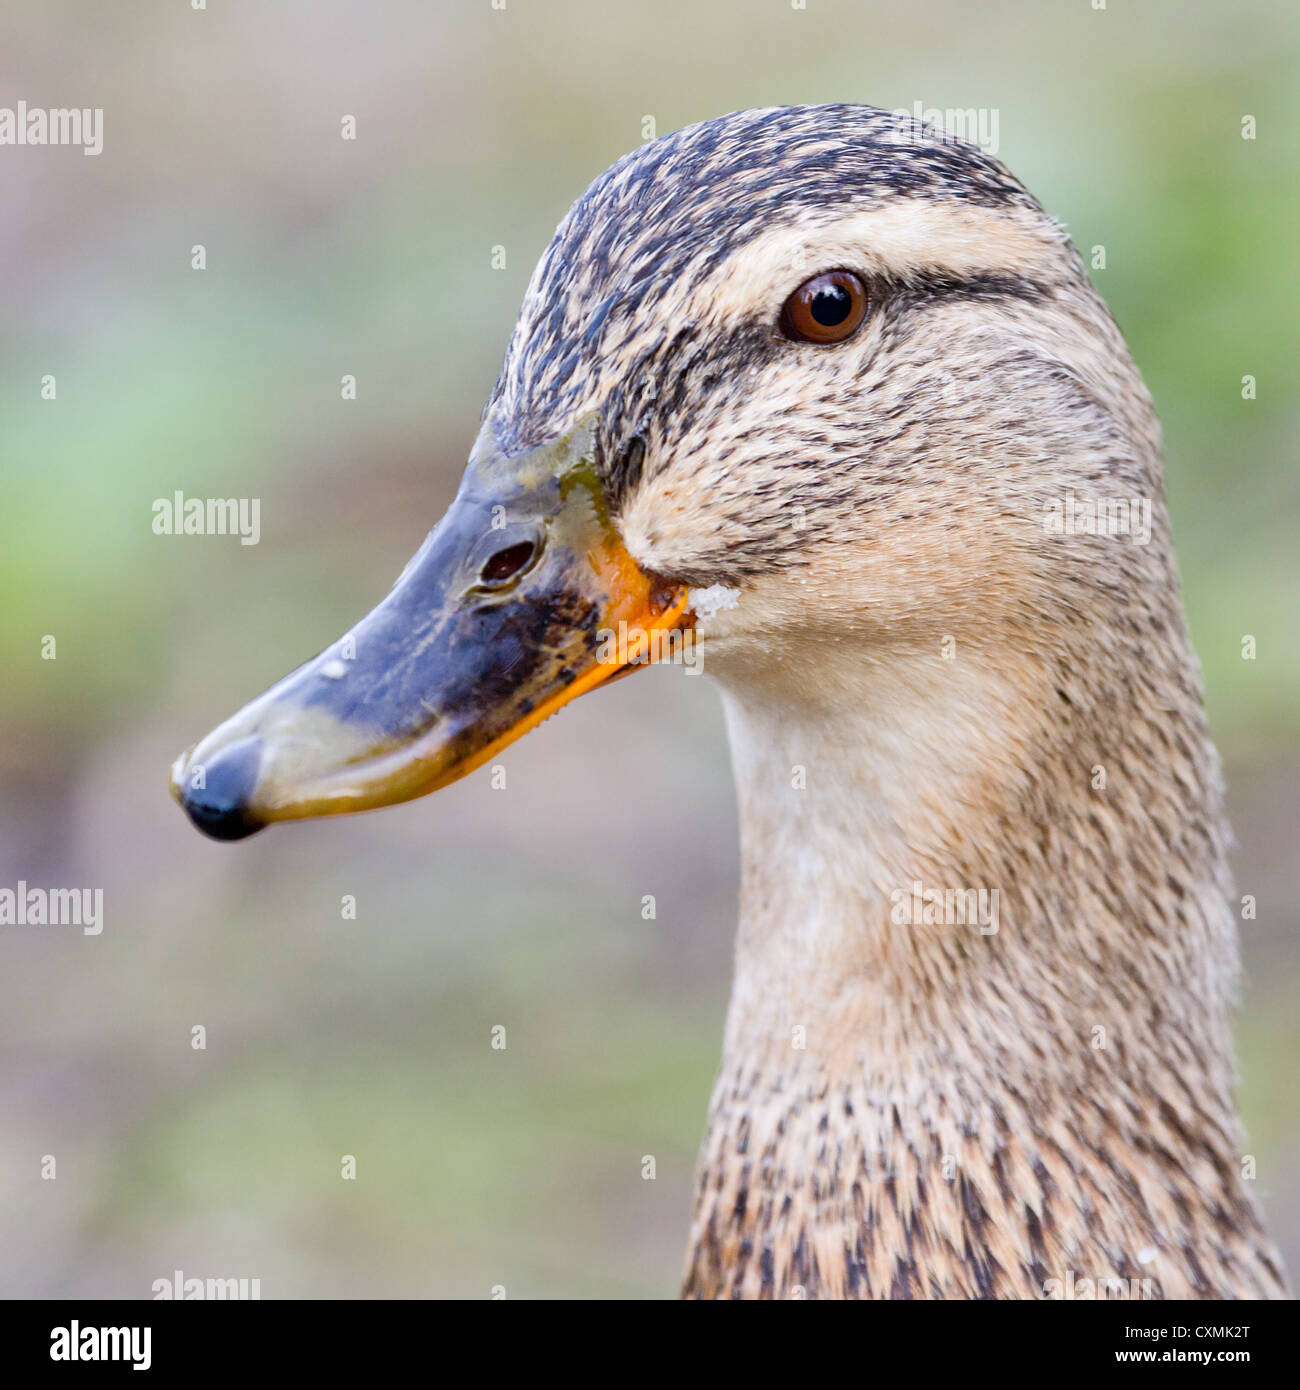 Close-up of a female mallard duck (Anas platyrhynchos), side oblique view of head - Stock Image